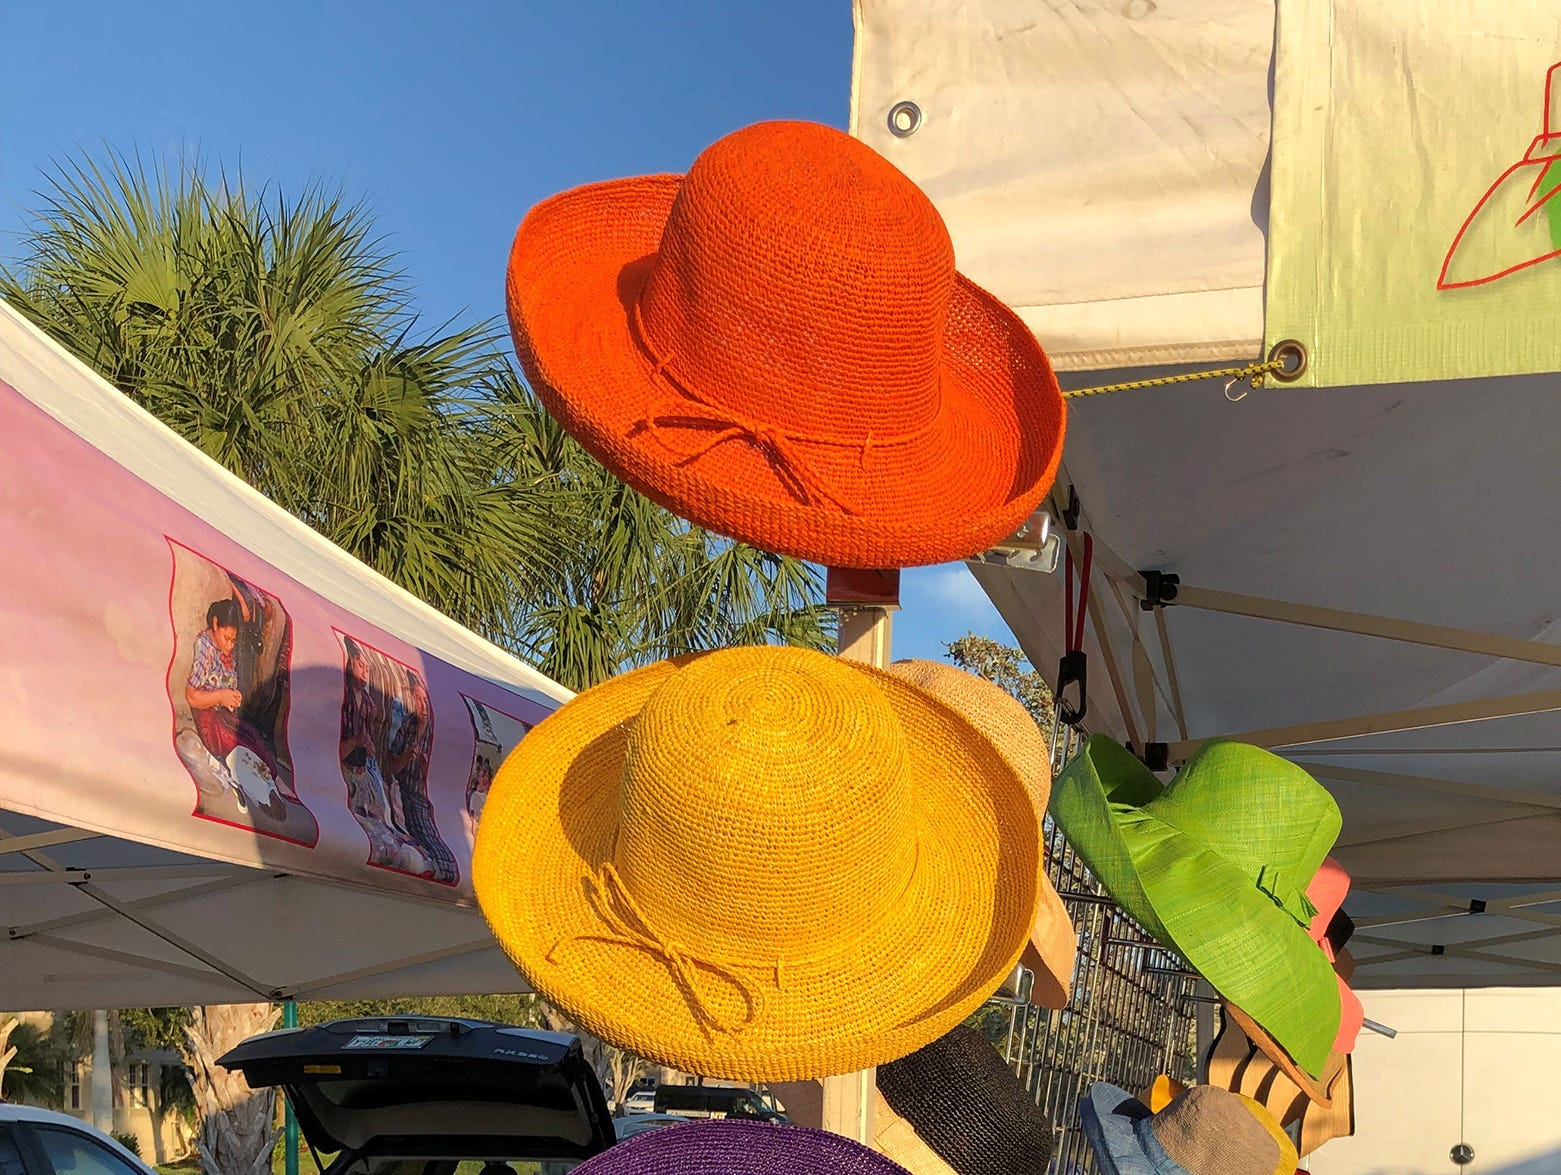 There were hats of many colors on display during opening day for the Marco Island Farmers Market at Veterans Community Park.